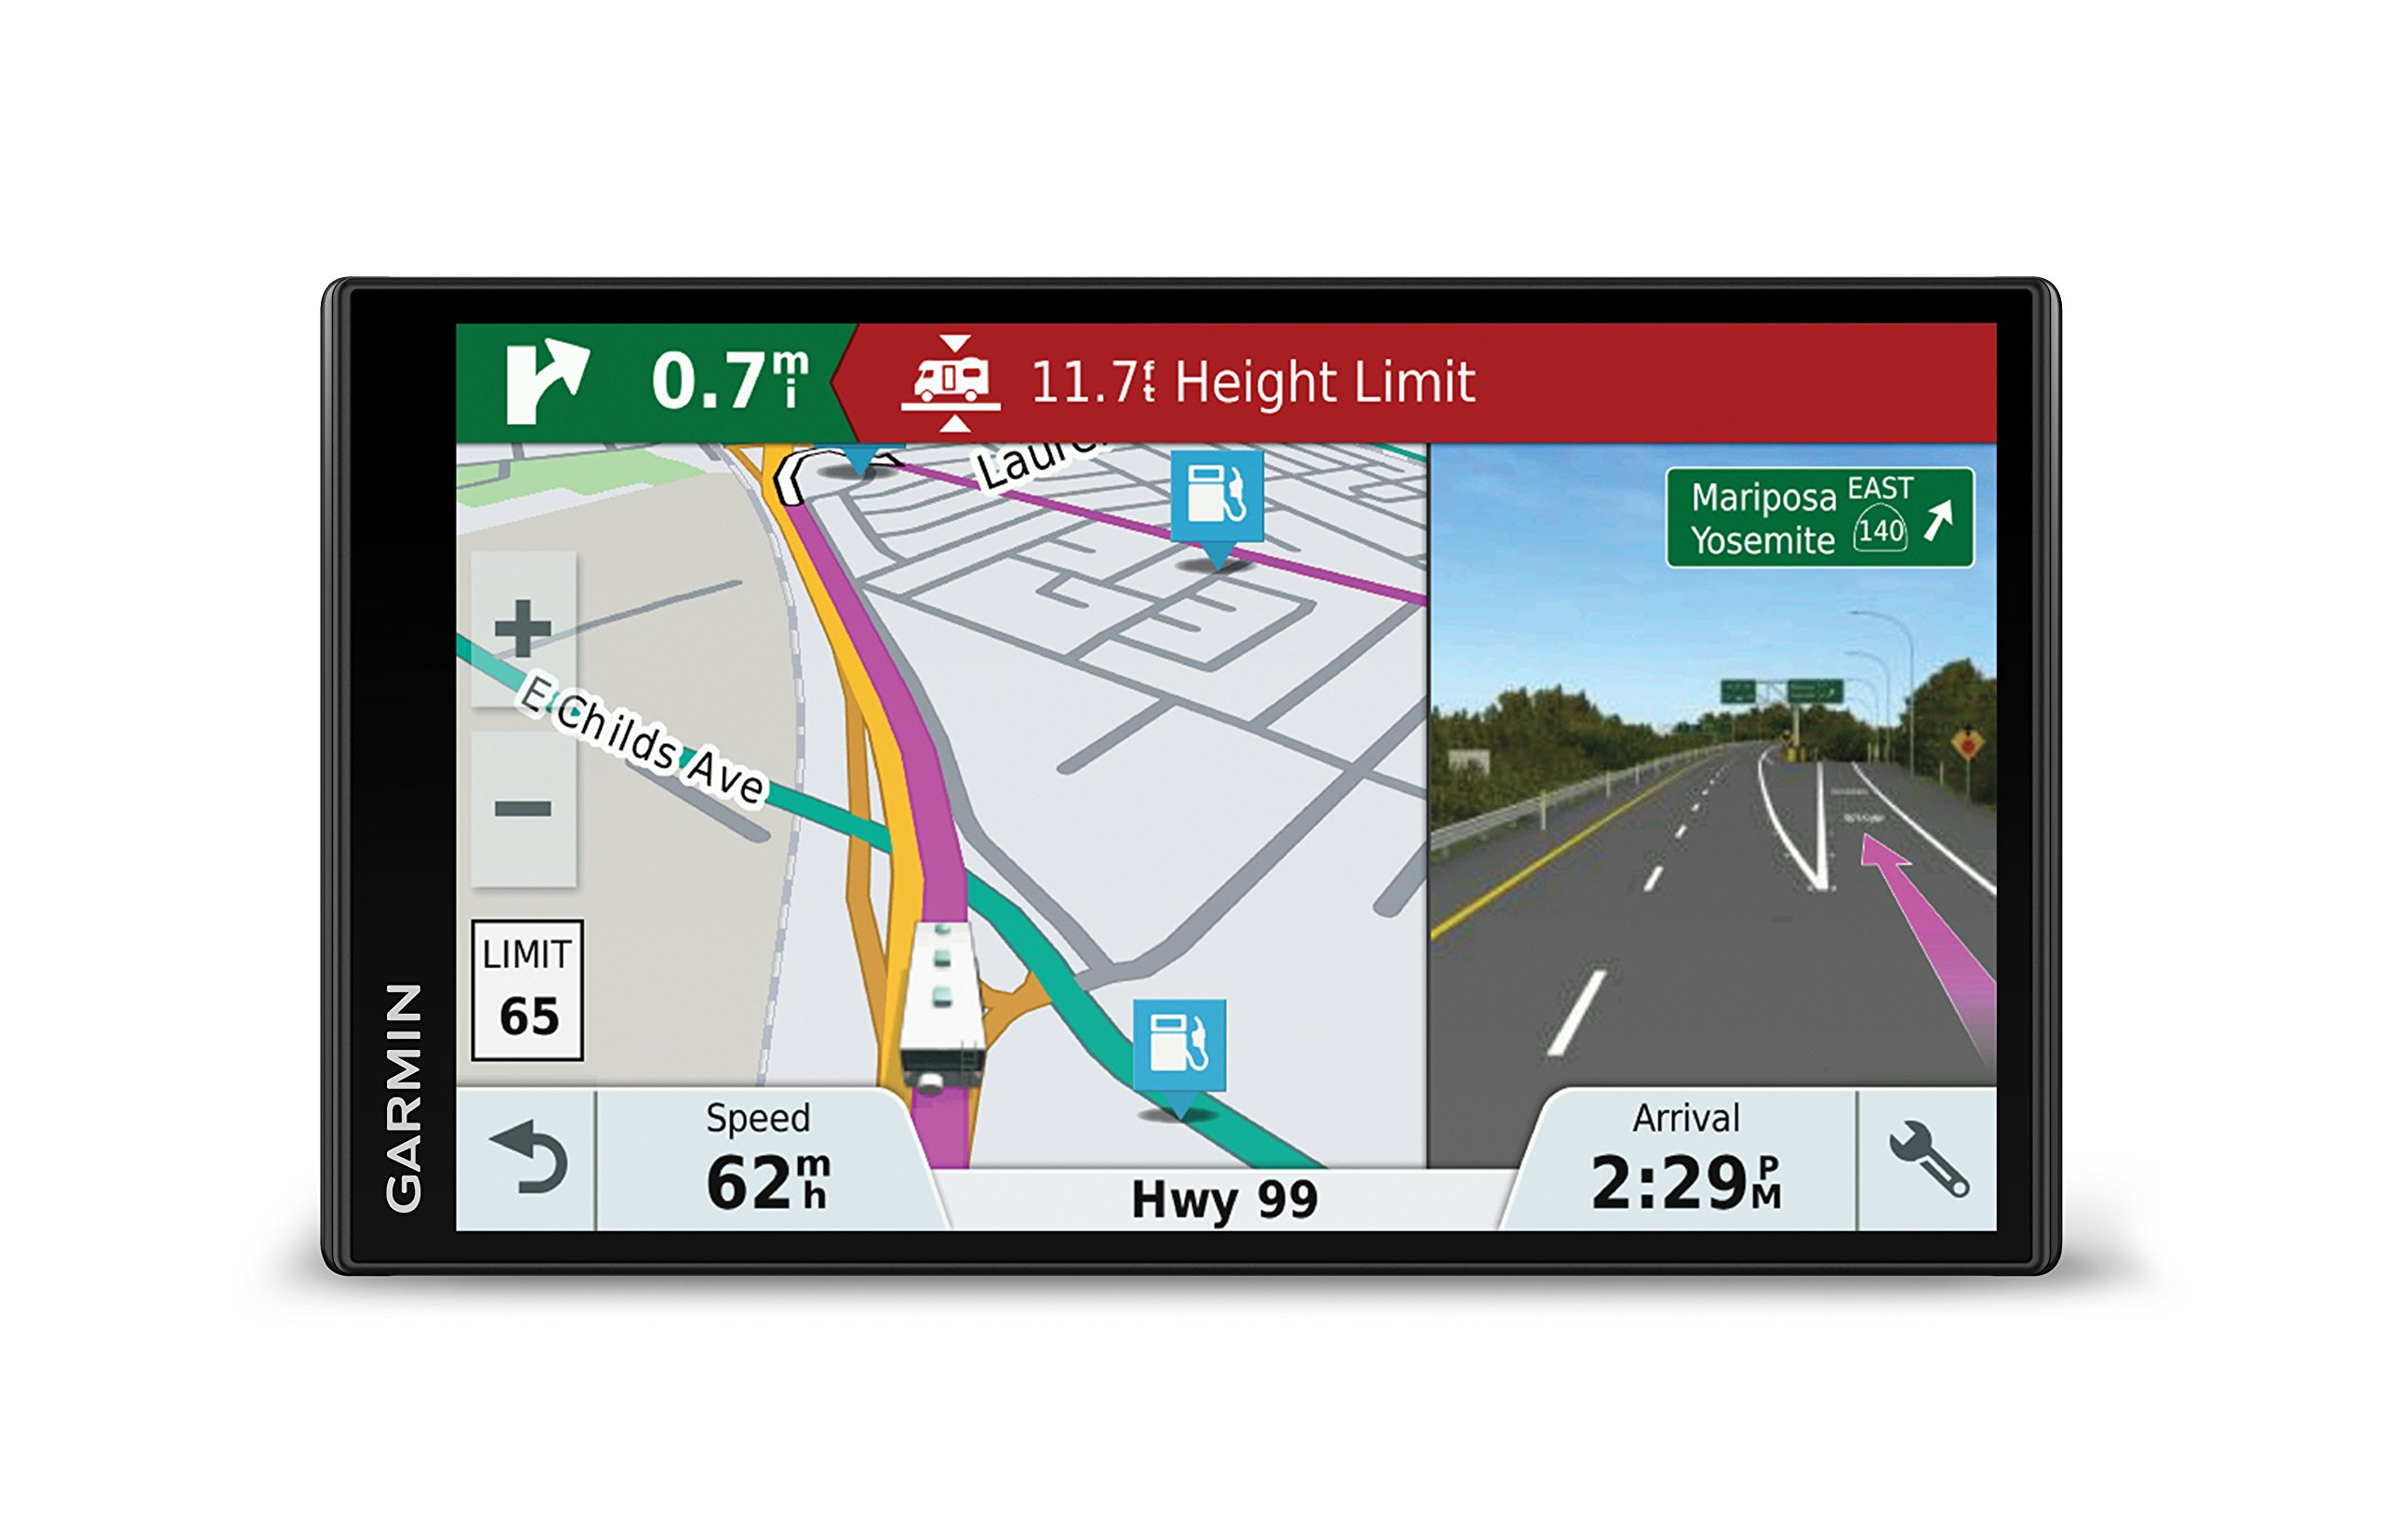 Garmin RV 770 NA LMT-S, Advanced Navigation for RVs and Towable Trailers, Directory of RV Parks & Services, Voice-Activated Navigation by Garmin